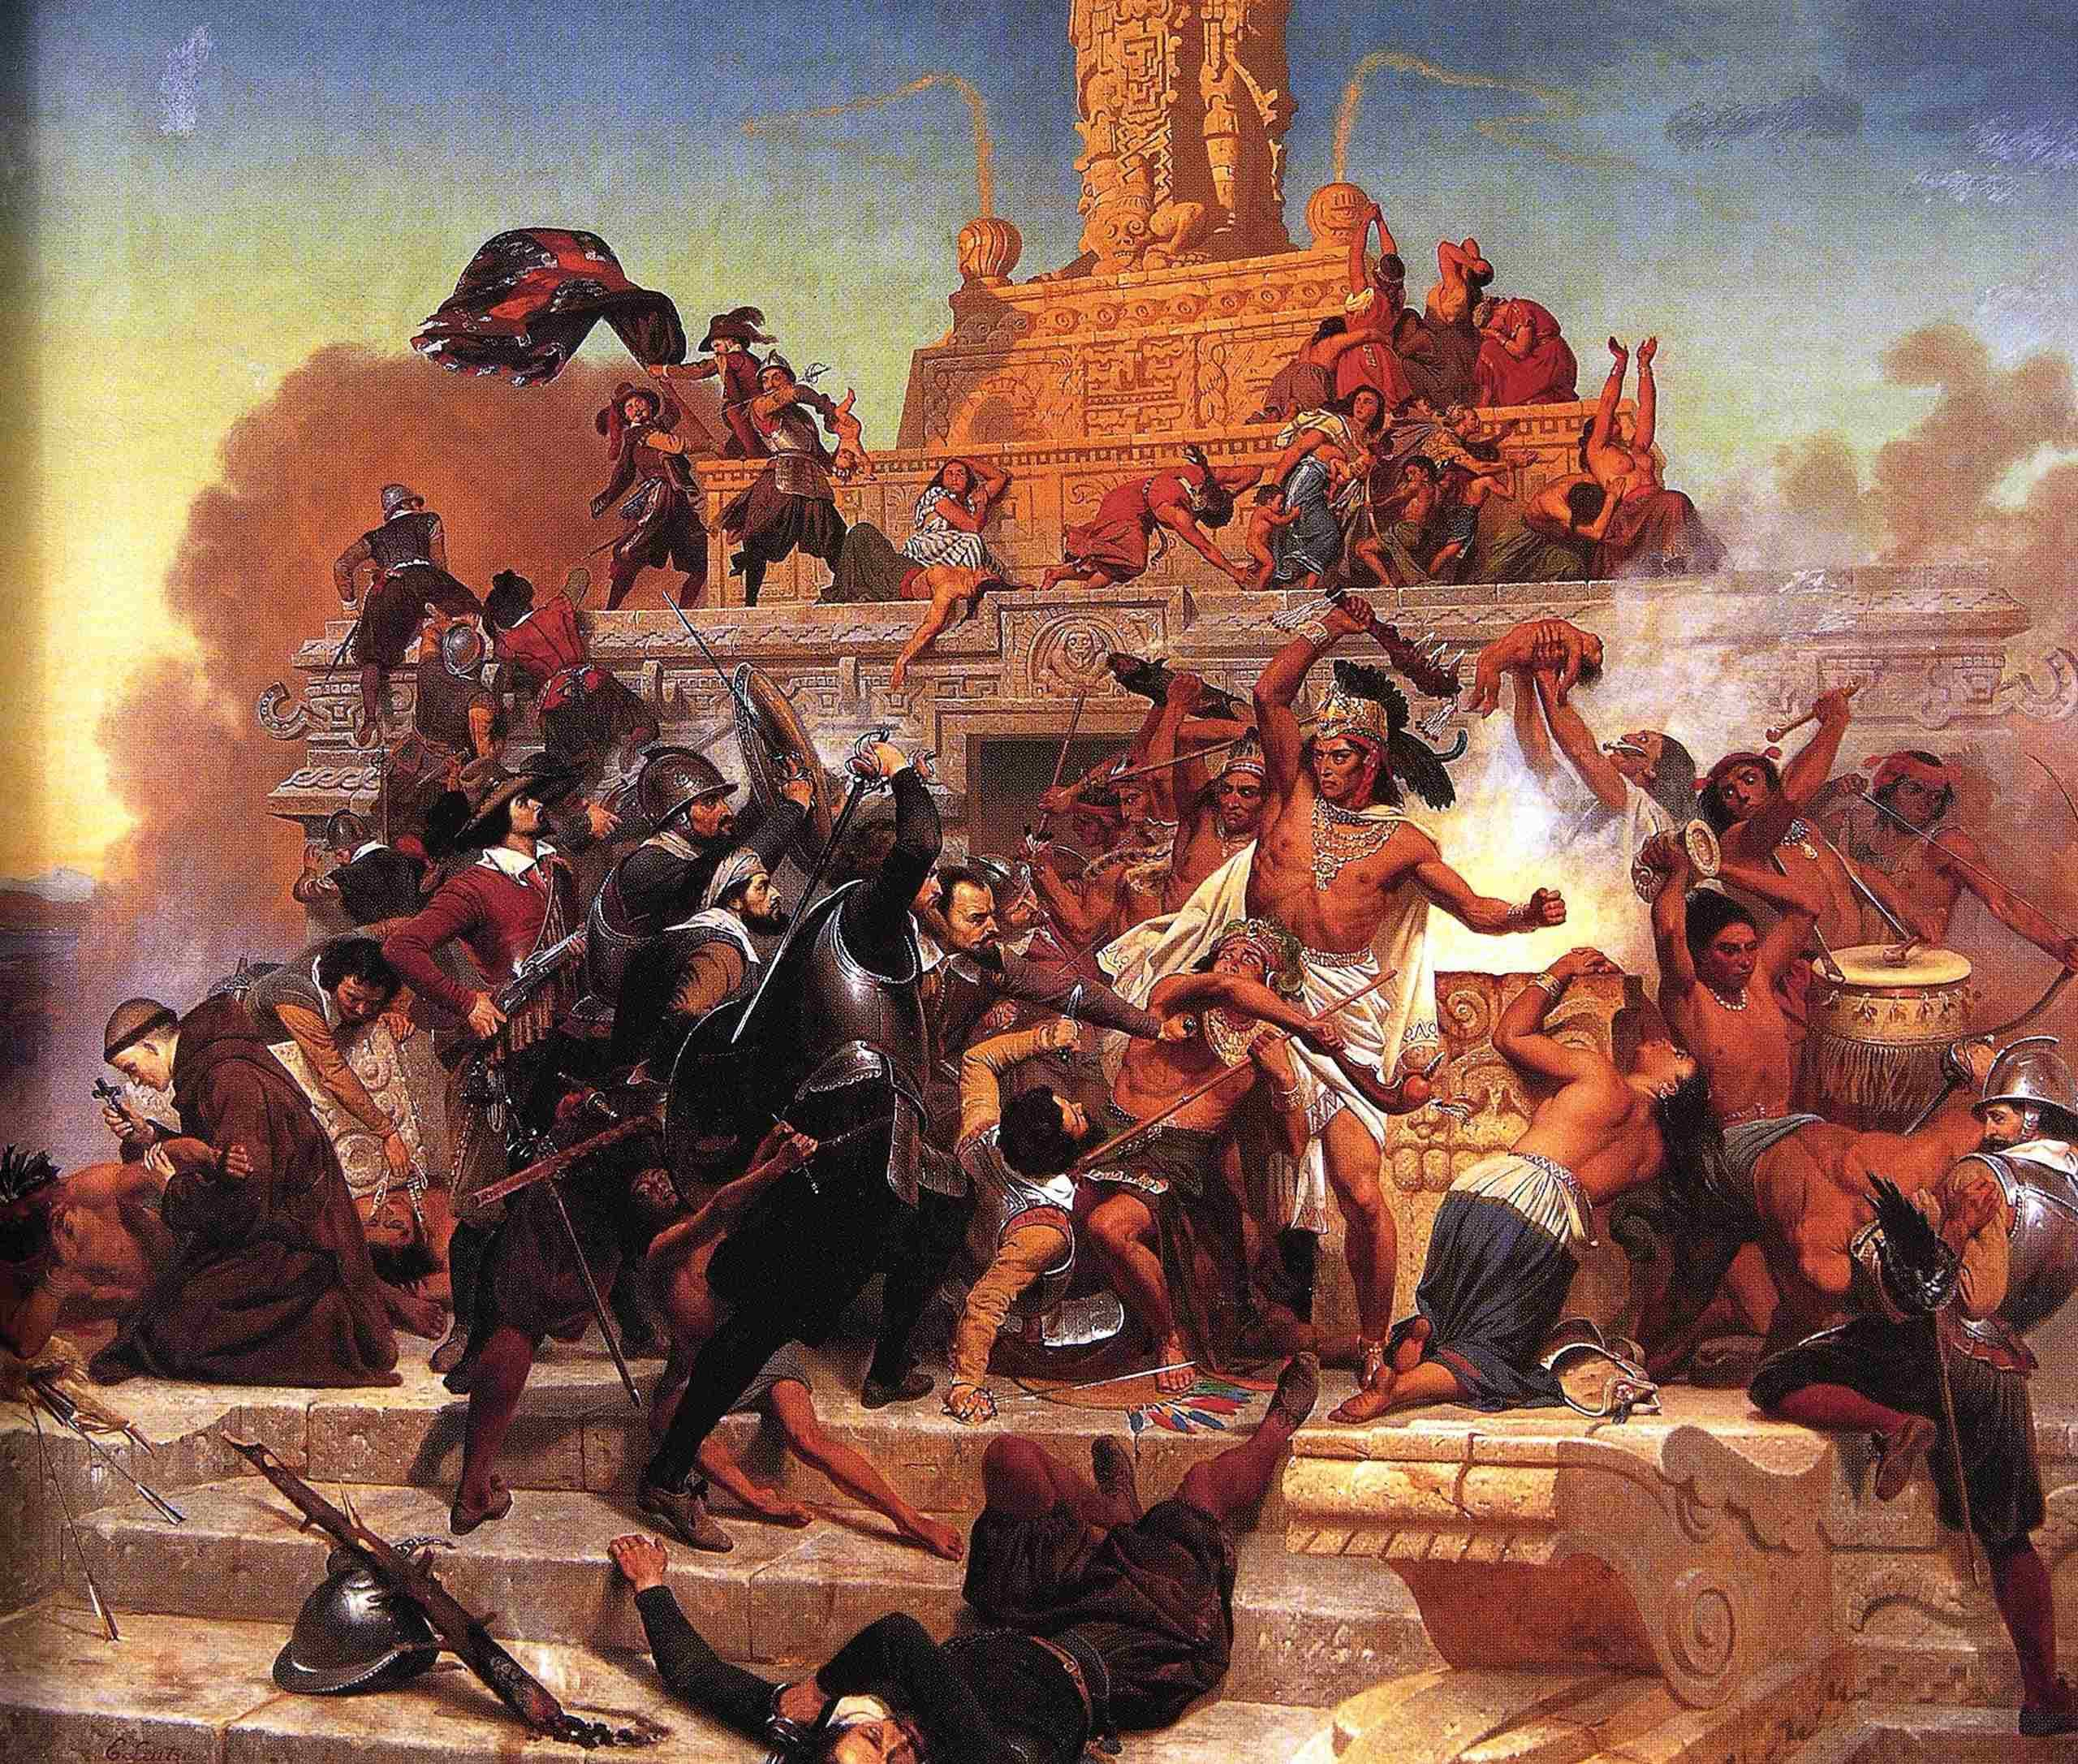 the storming of the bastille in paris was the beginning of what major event